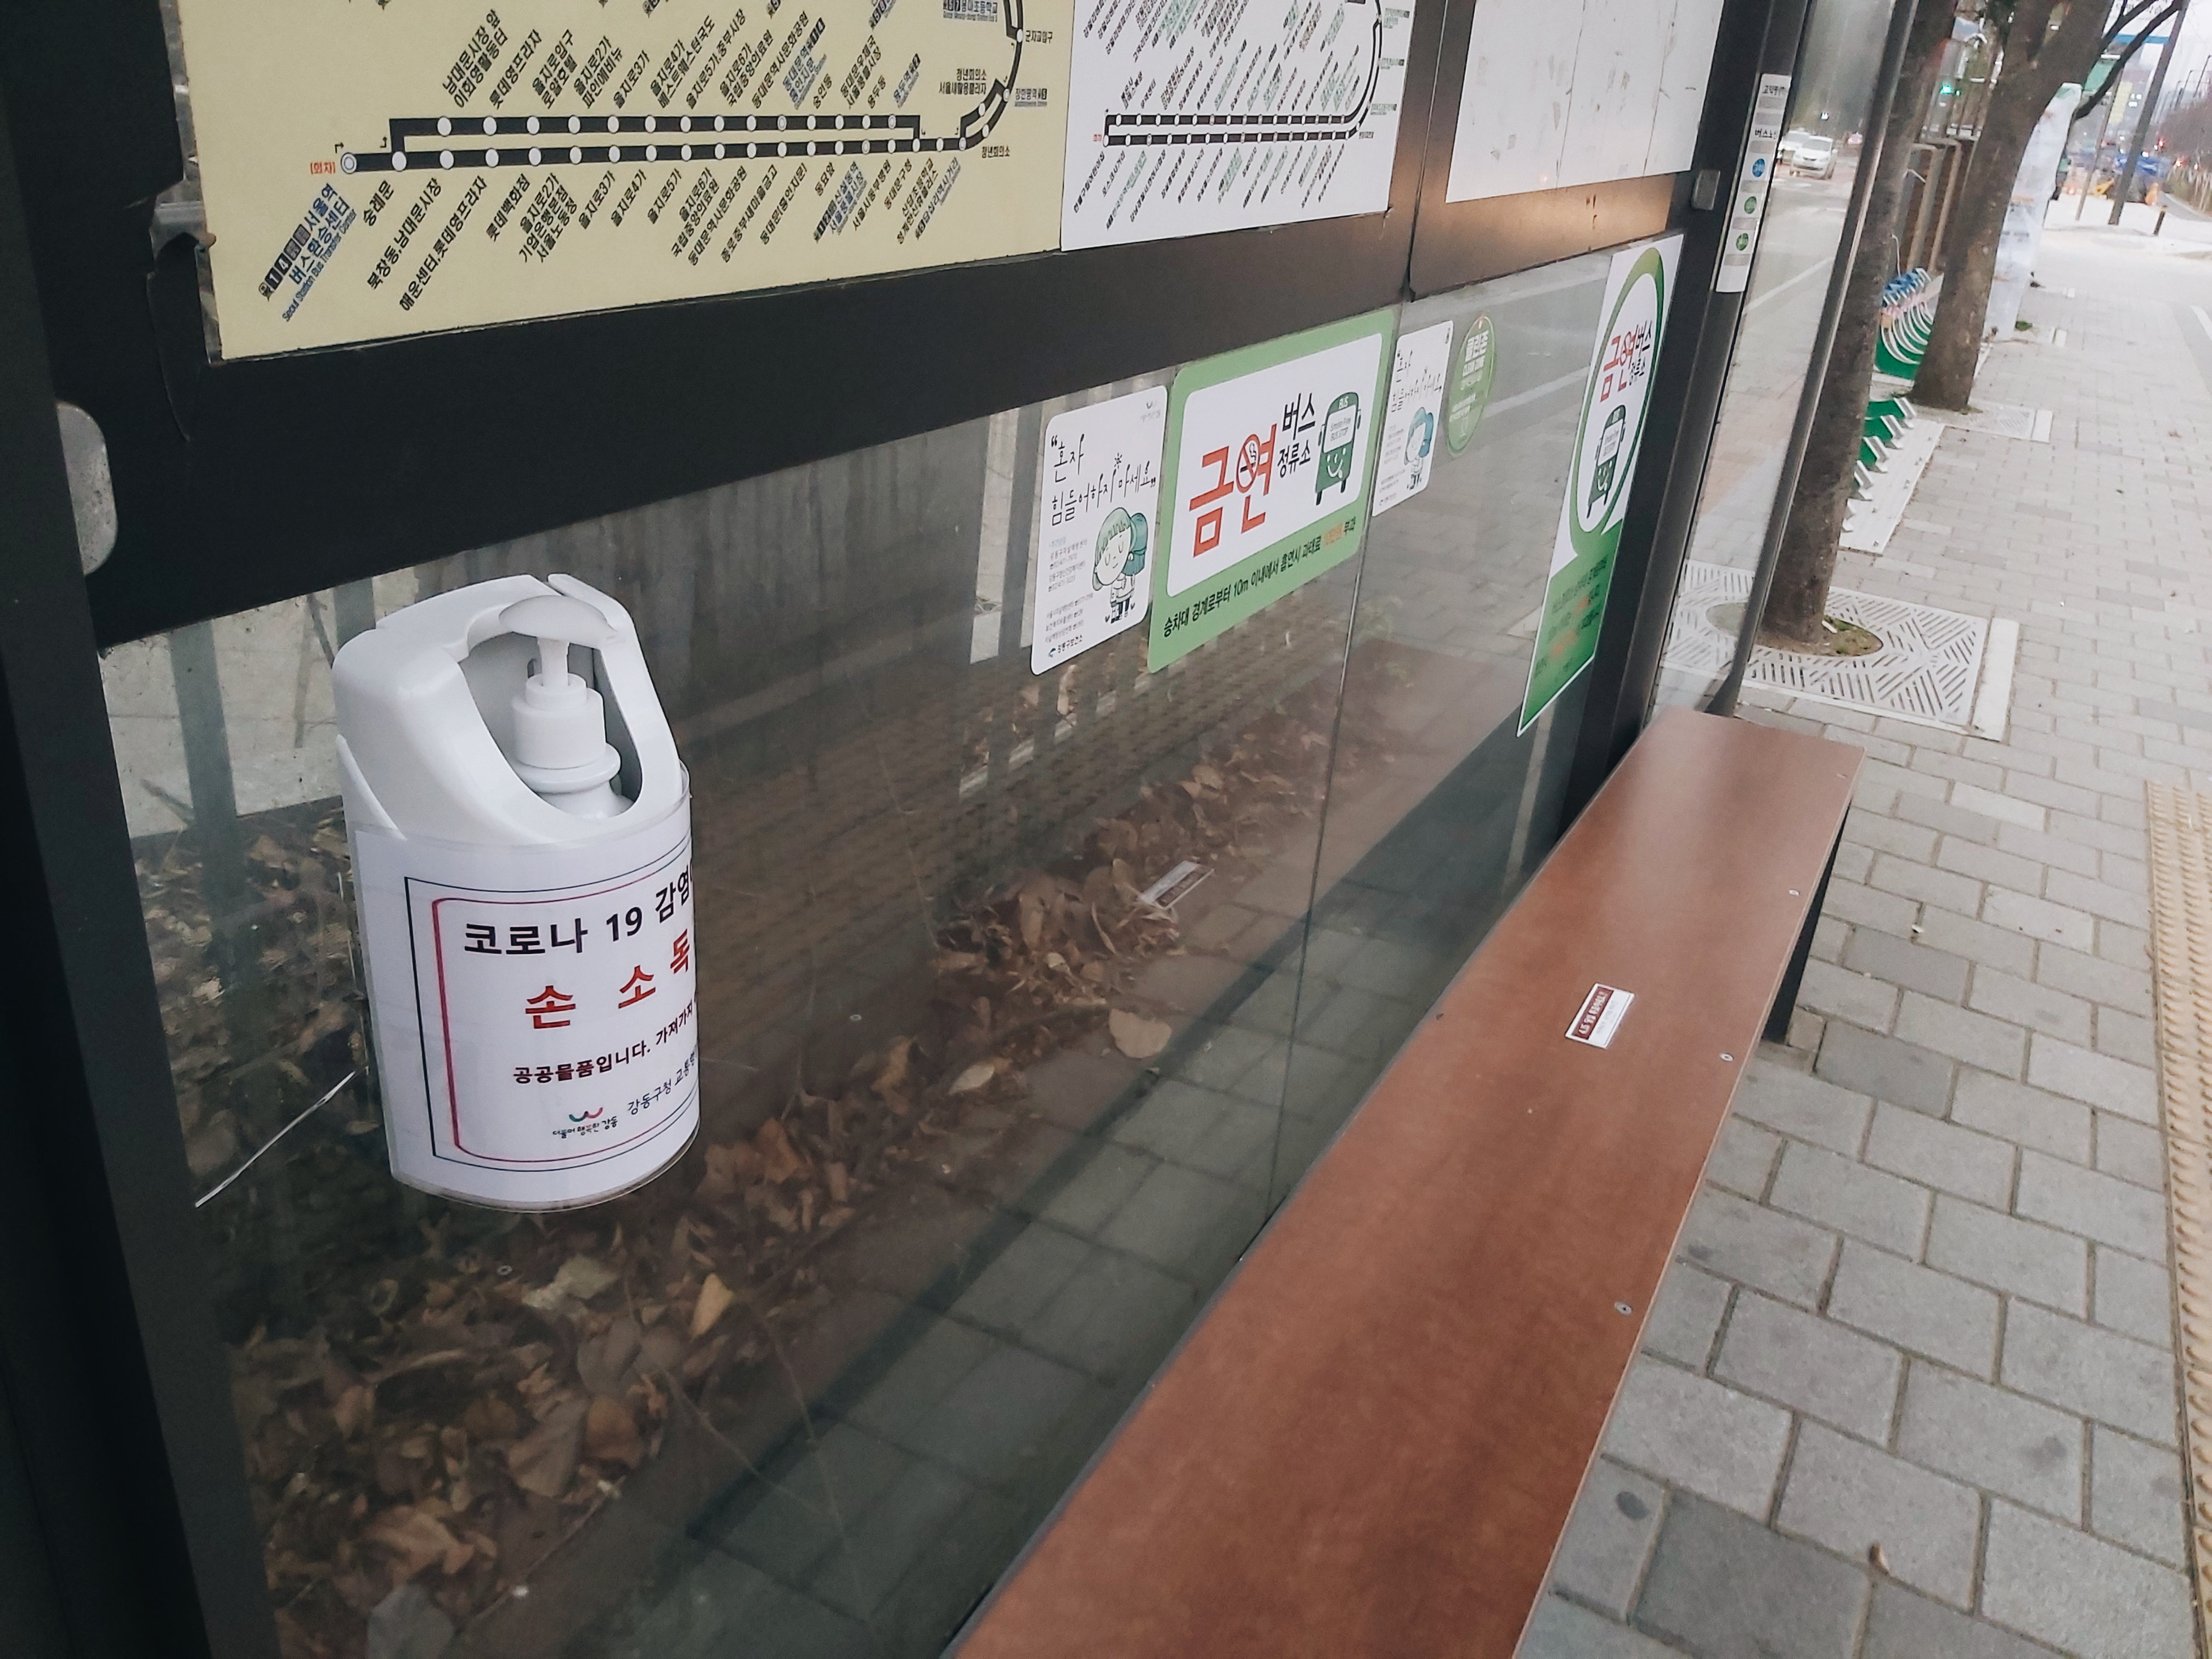 Hand sanitizer dispensers are found at practically every bus stop for the public to use.